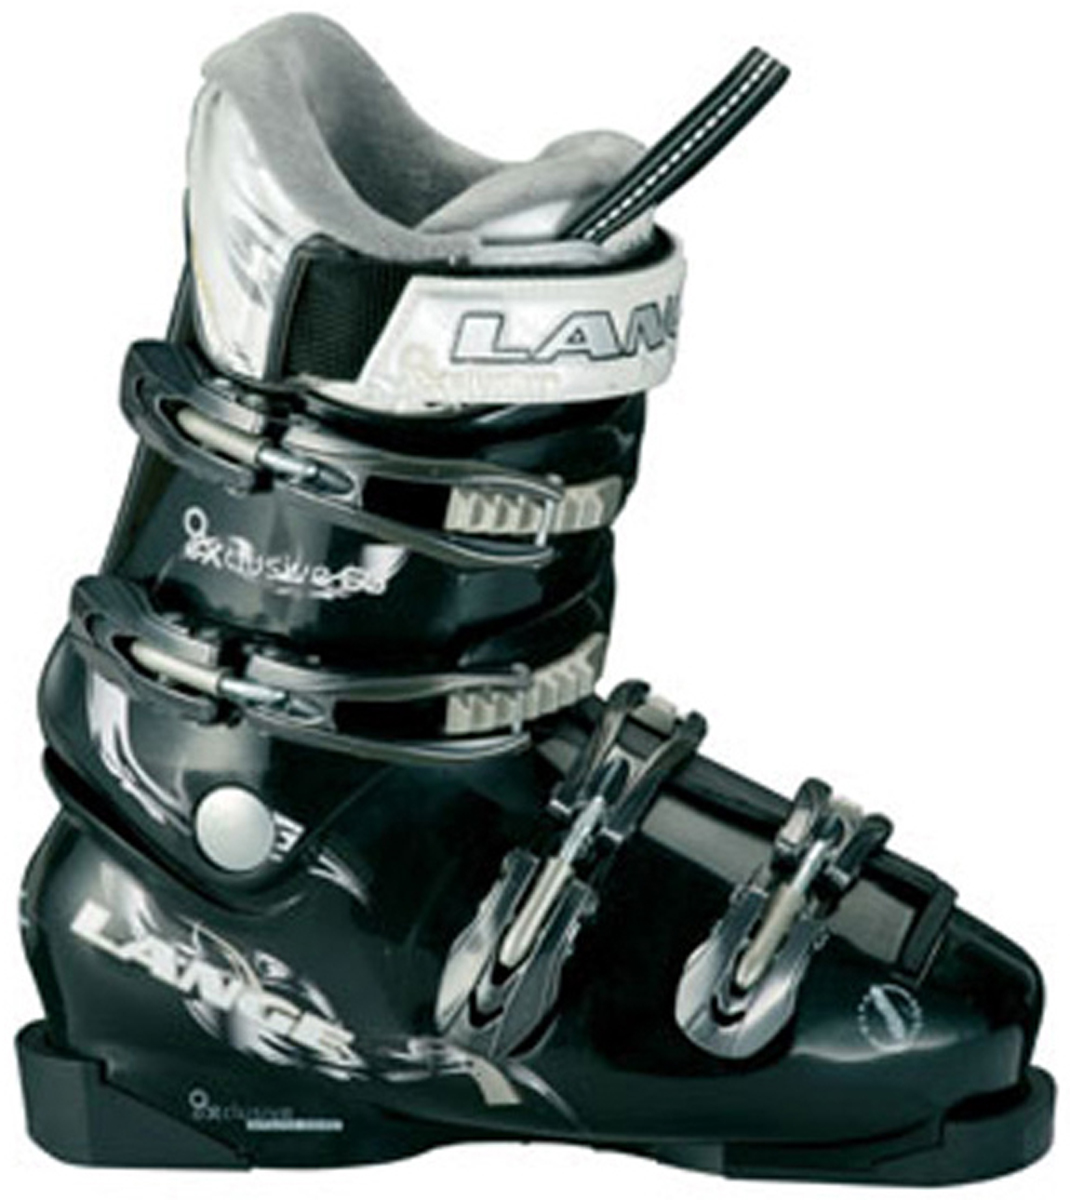 Ski Every skier knows that boots are extremely important. Without a good pair you could have sore feet by the end of the day, or even worse, one of your skis could come detached and lead to a fall and injury. Do not settle for anything but the best. Consider a pair of Lange Exclusive 60 Ski Boots for the best experience on the mountain no matter if it is your first time on the slopes or you are a seasoned veteran. You owe it to your feet.Key Features of the Lange Exclusive 60 Ski Boots: 99mm Last Flex: 60 - $177.95